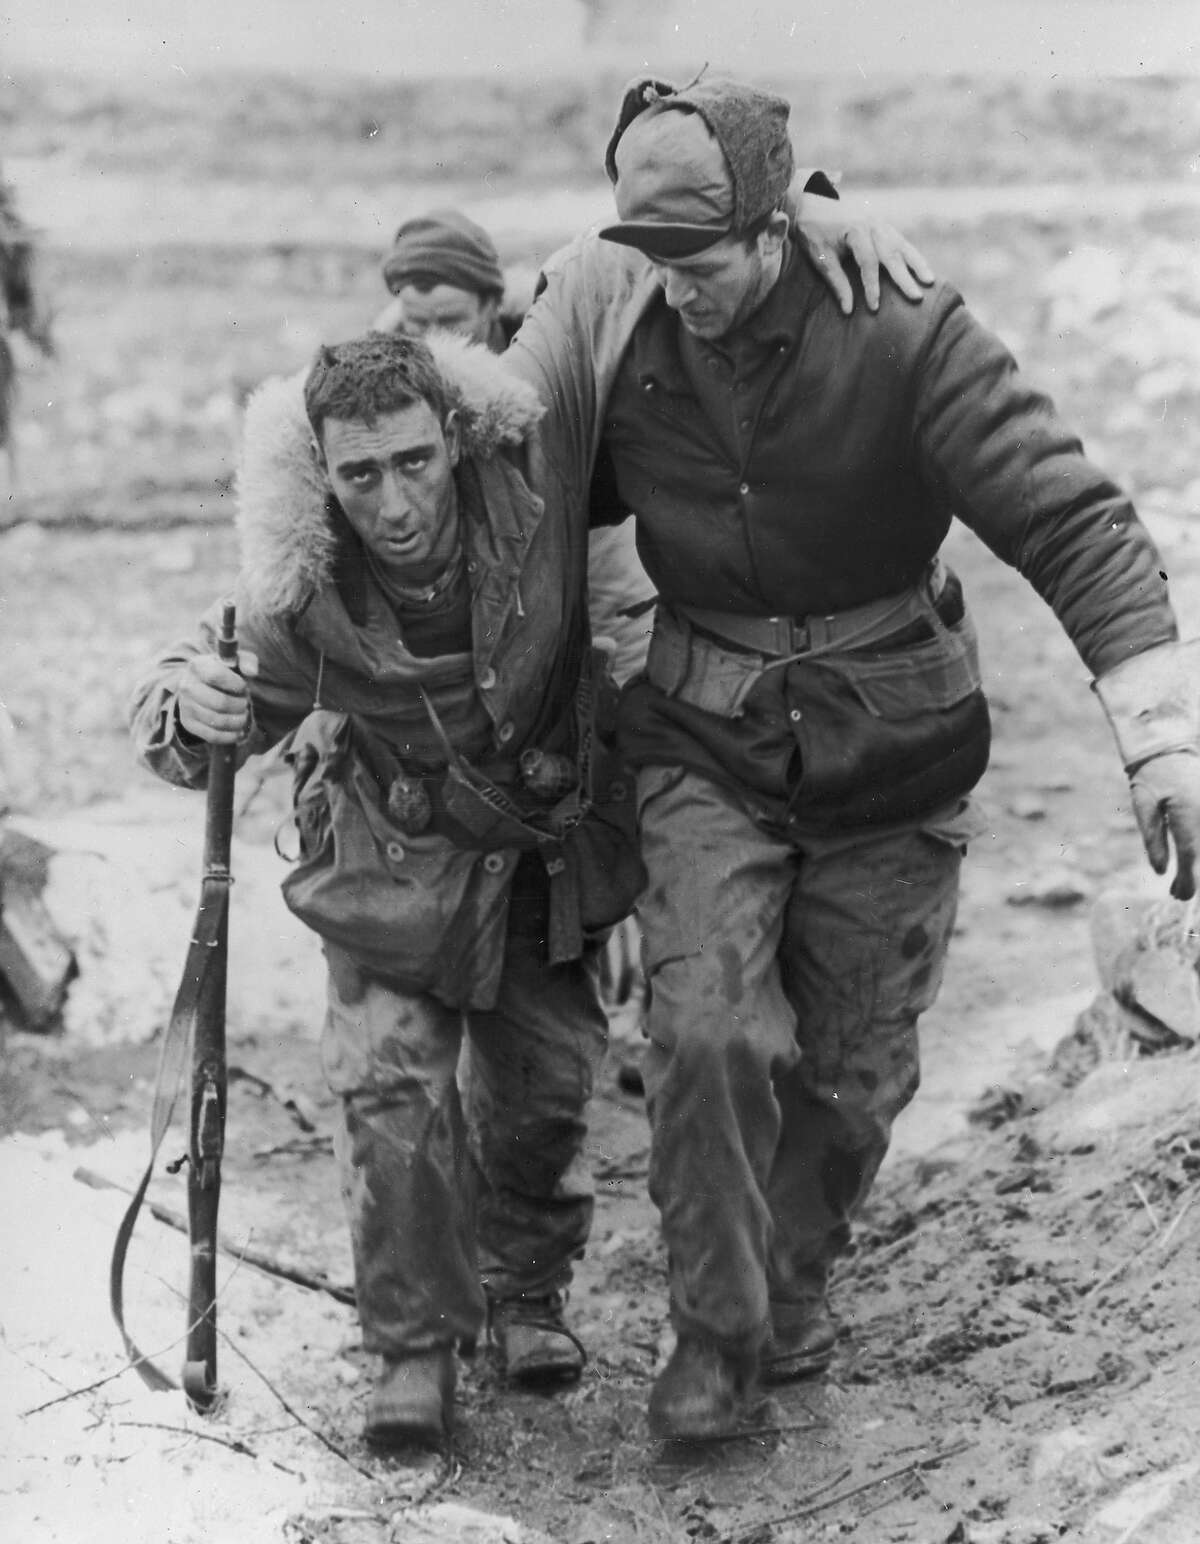 Click through this slideshow to see a look back at North Korea. 1950: A United Nations soldier in uniform helps a wounded Canadian rifleman to an aid station behind the front lines during the Korean War.